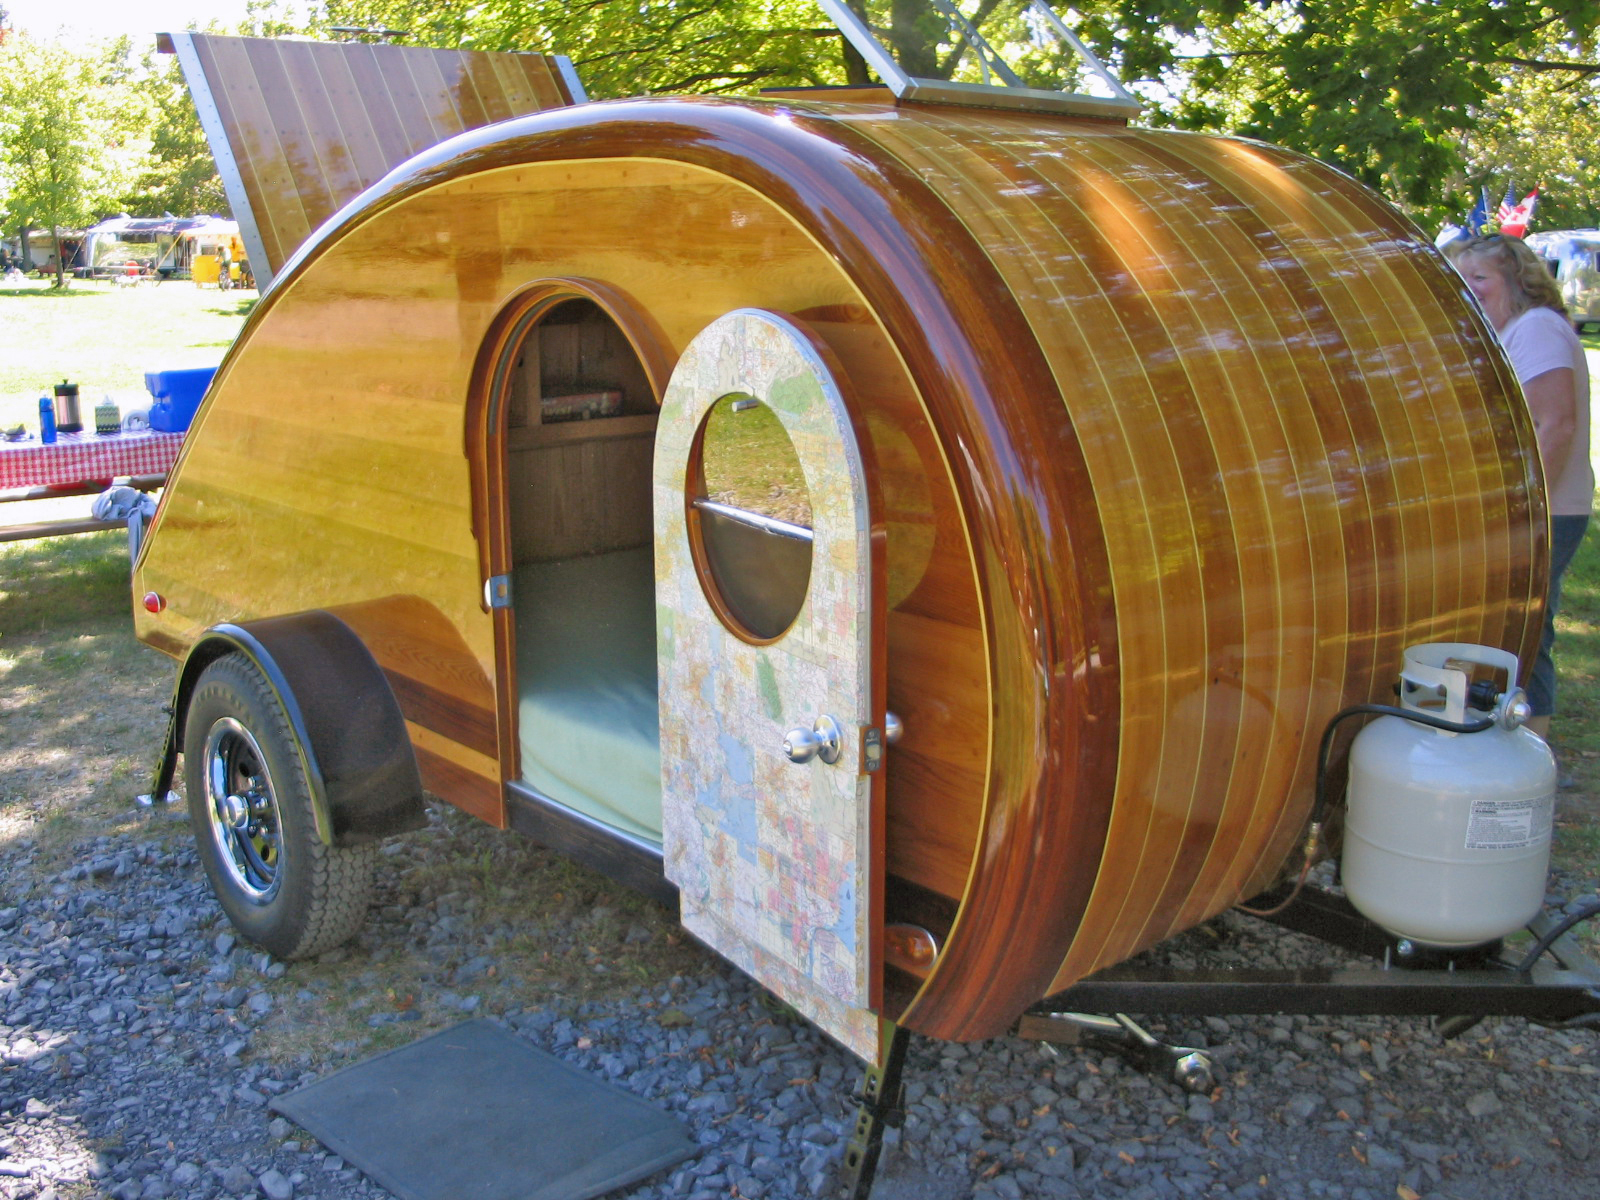 Small Camper Trailer 1000 images about camper trailers on pinterest trailers off road trailer and campers Small Camping Trailer Beautiful Homemade Wood Teardrop Camping Trailer